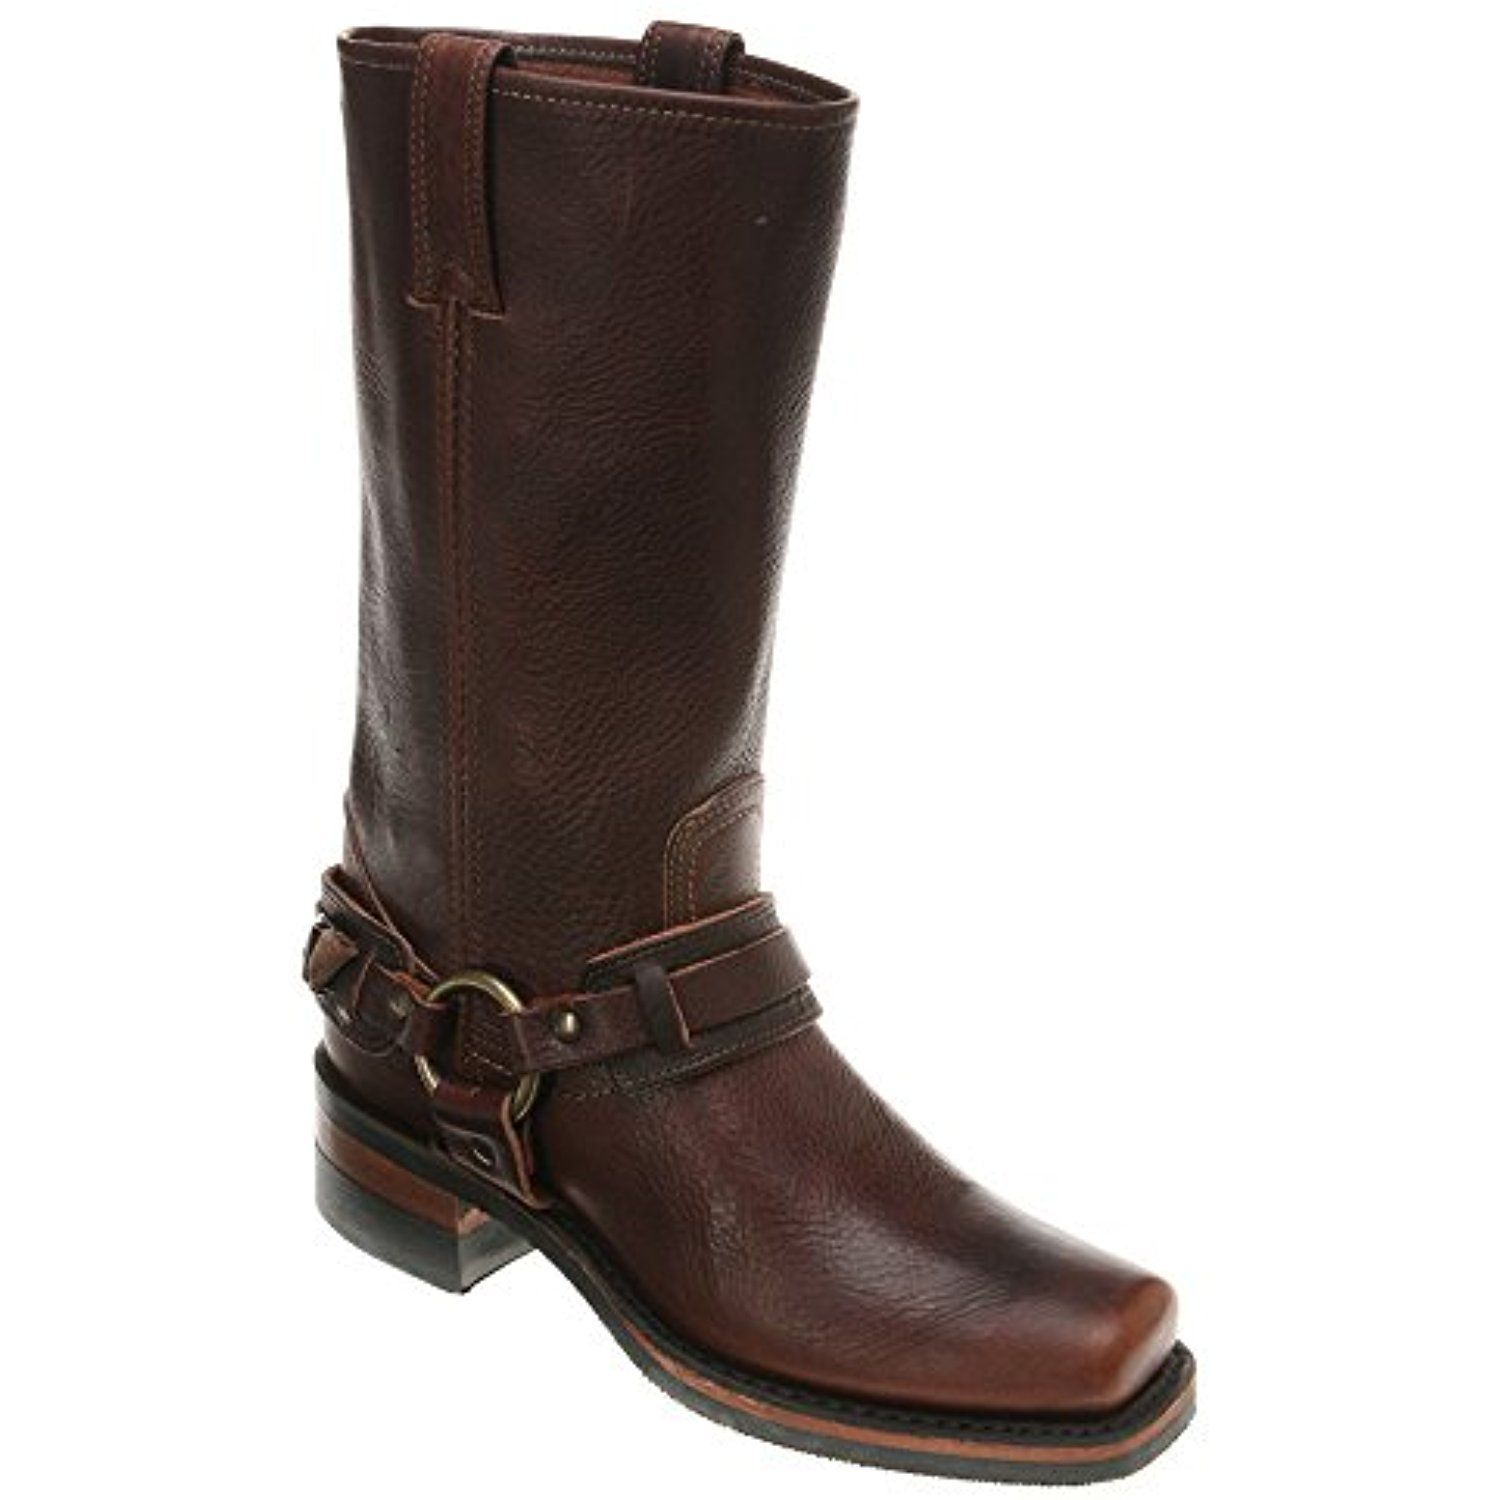 Frye Belted Harness Leather Pull-On Block Heel Boots kydOVnroiY